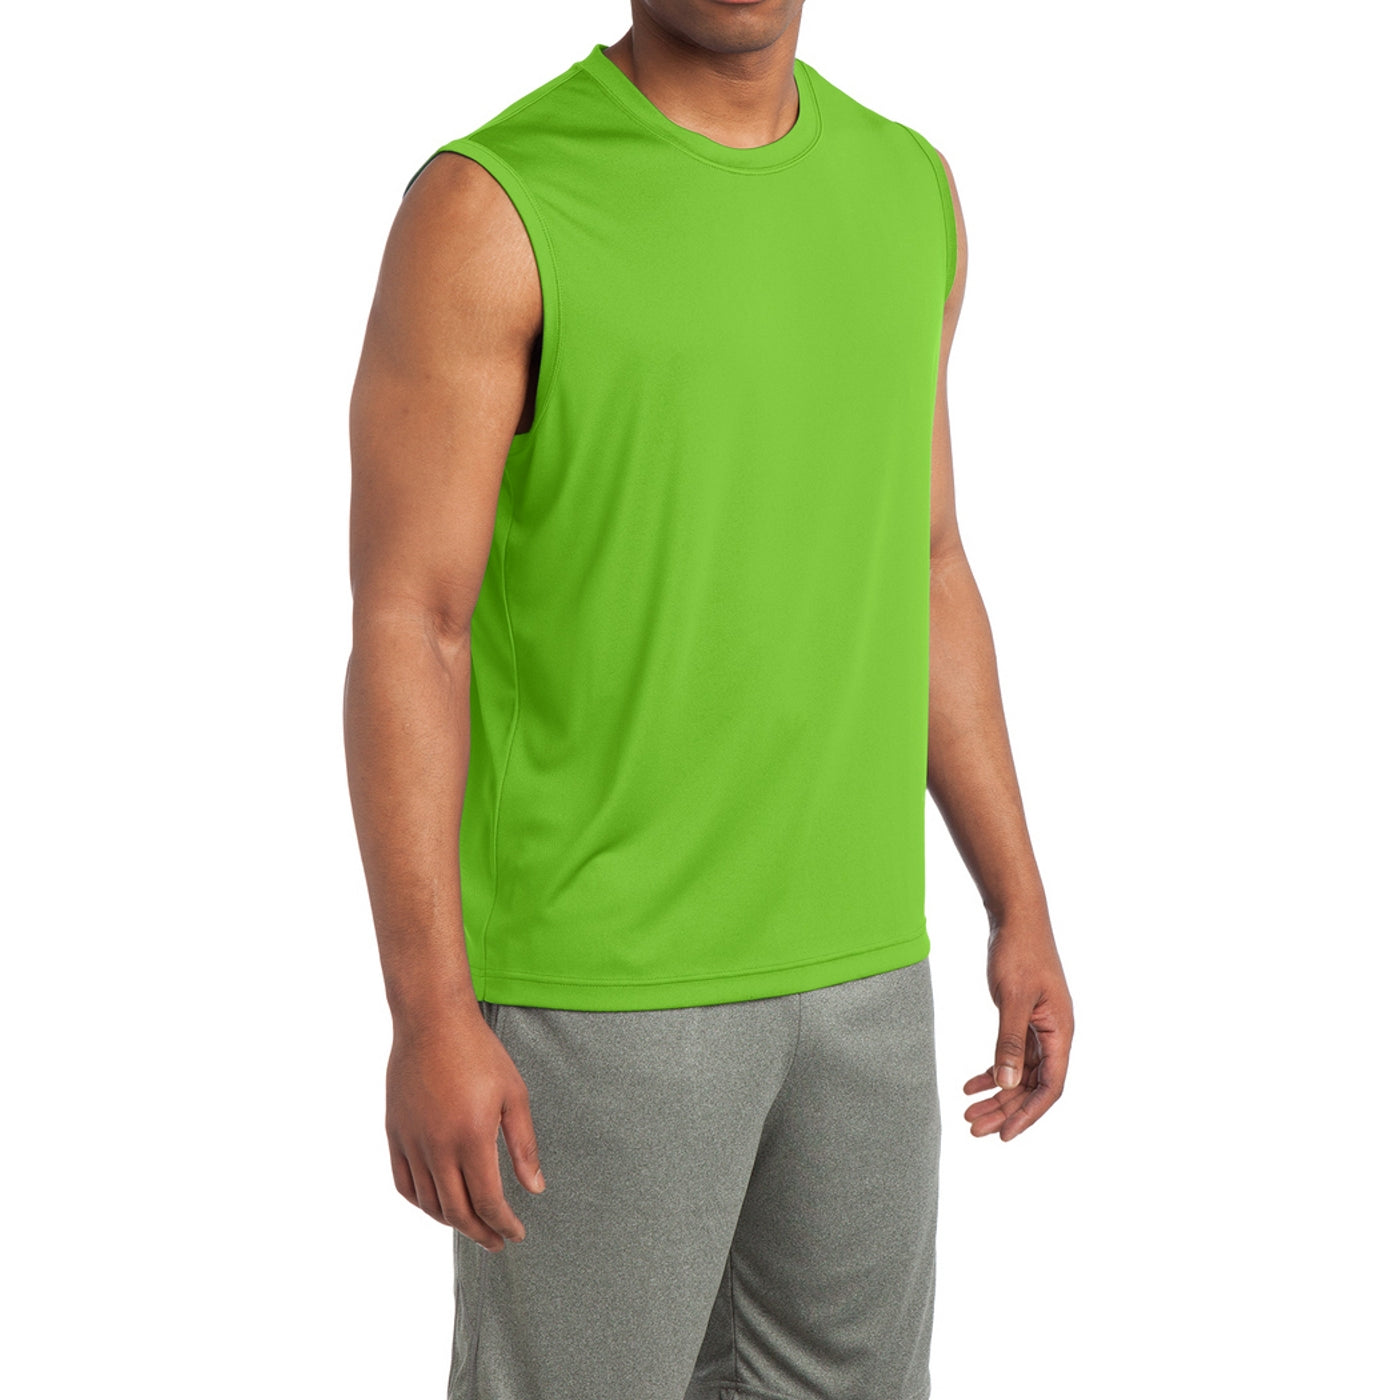 Sleeveless PosiCharge Competitor Tee - Lime Shock